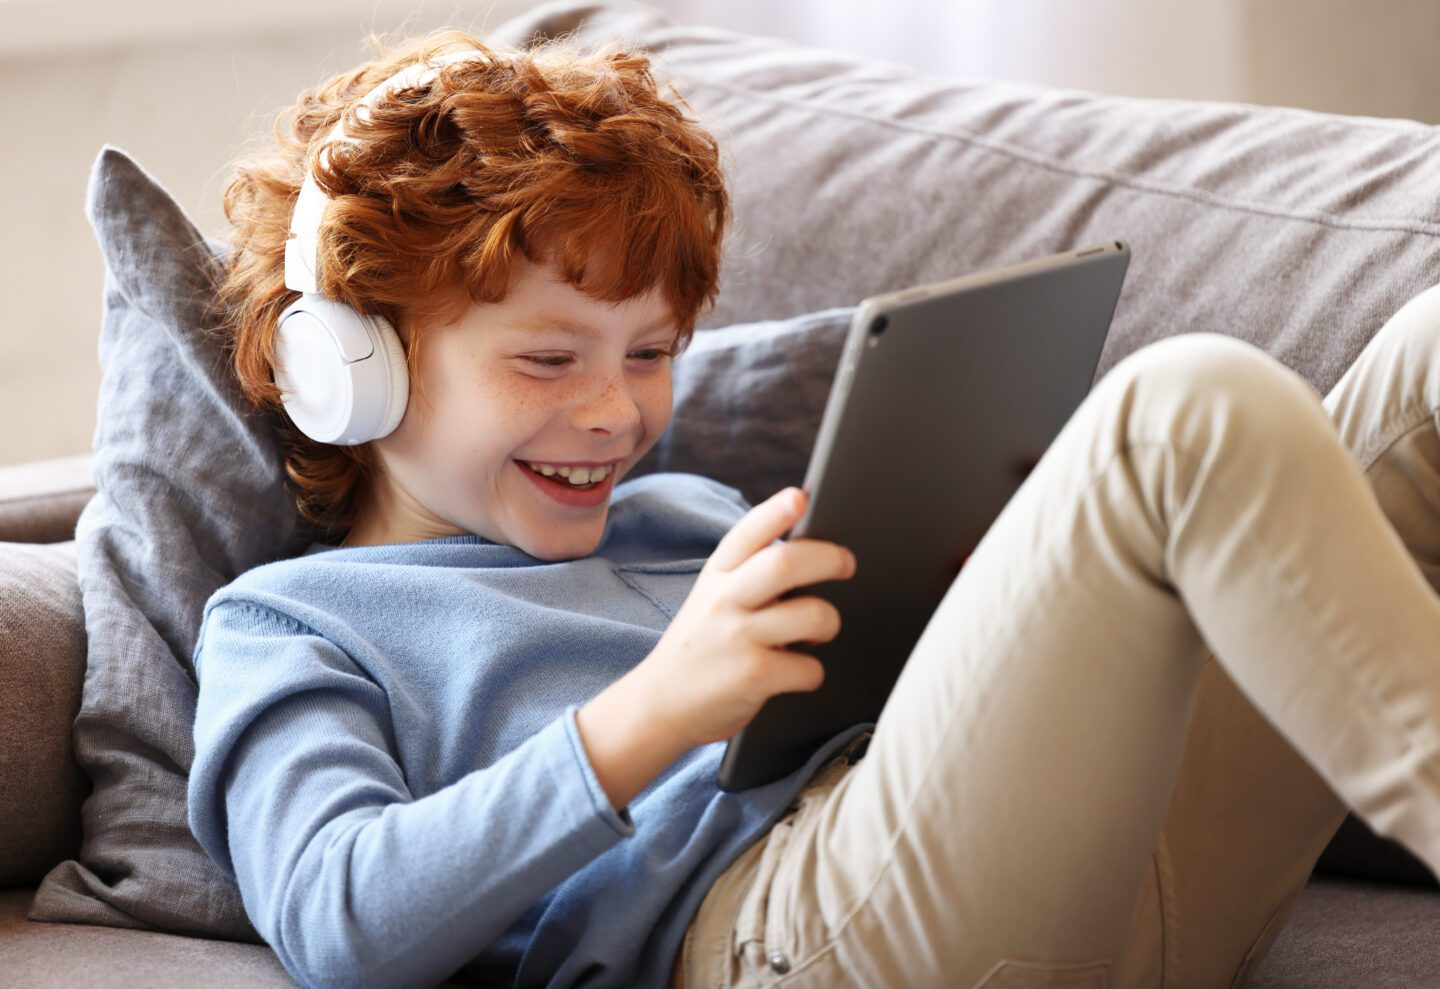 little boy sitting on a sofa smiling at his iPad as he listens to a podcast